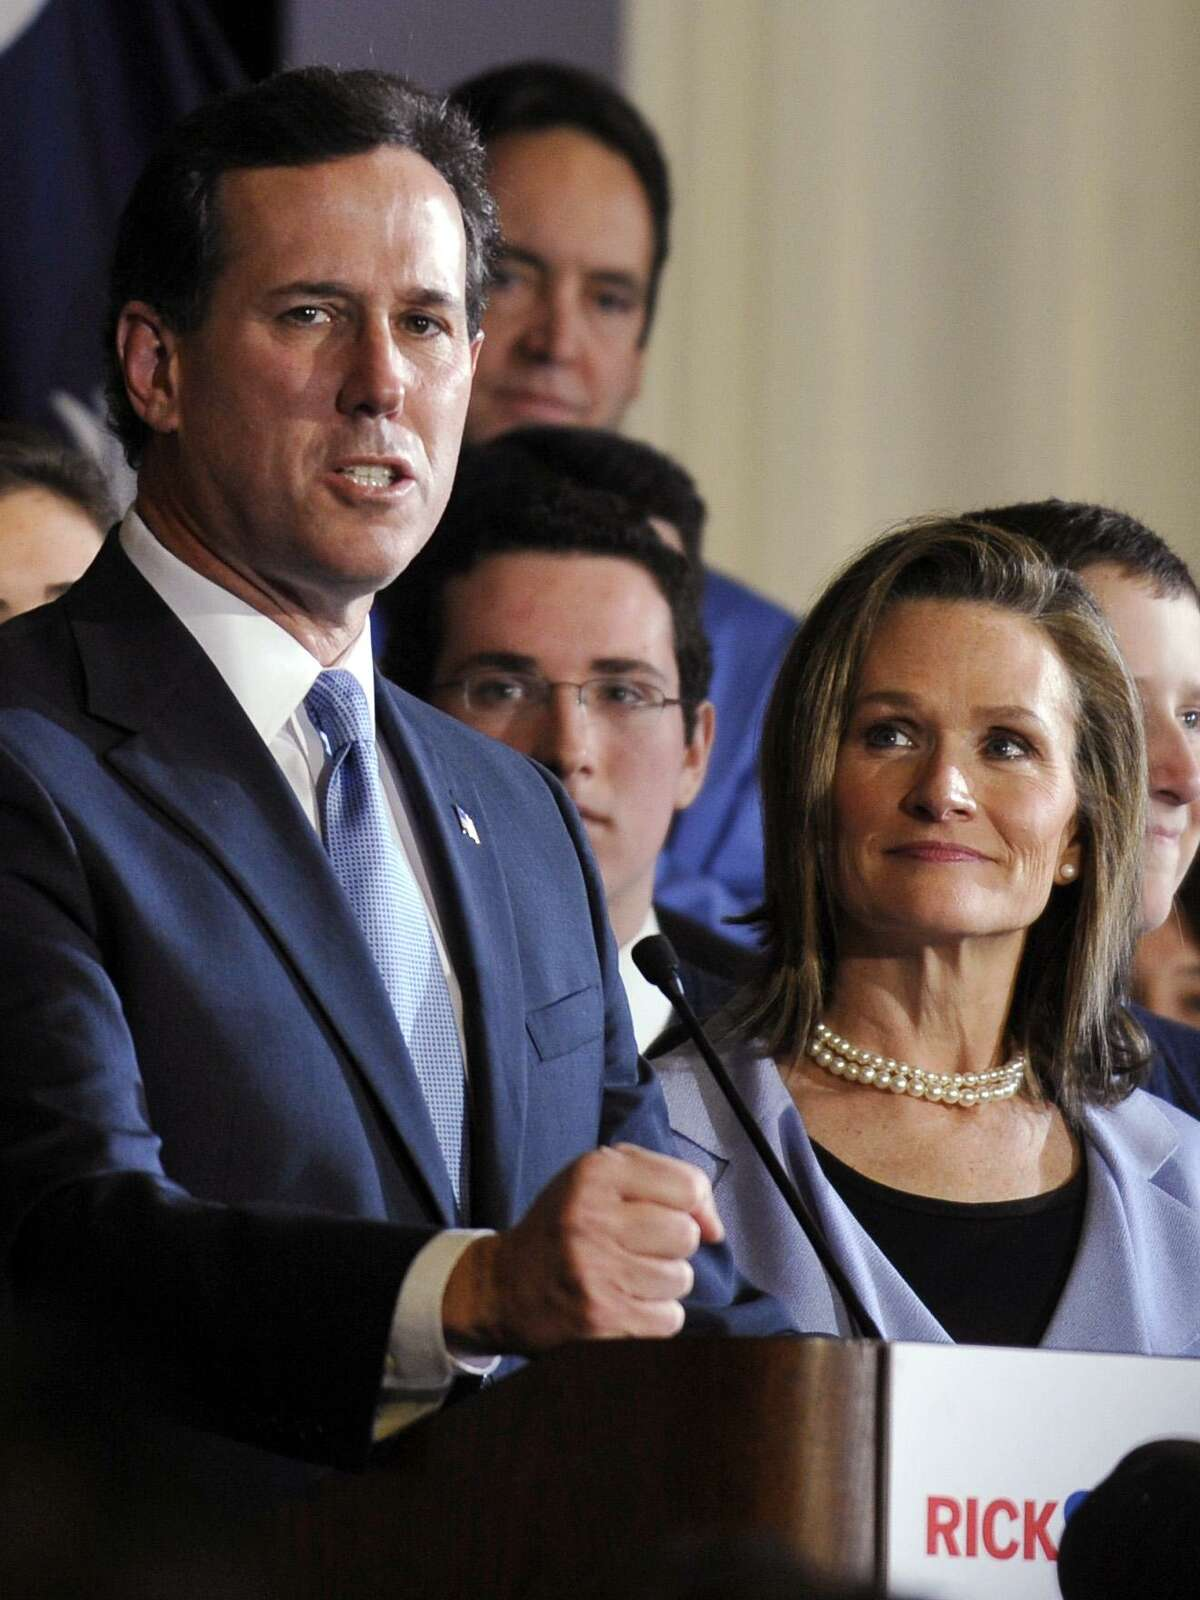 Republican presidential candidate, former Pennsylvania Sen. Rick Santorum, left, speaks as his wife, Karen, looks on during a South Carolina Republican presidential primary night rally at the Citadel, Saturday, Jan. 21, 2012, in Charleston, S.C. Santorum says it's a